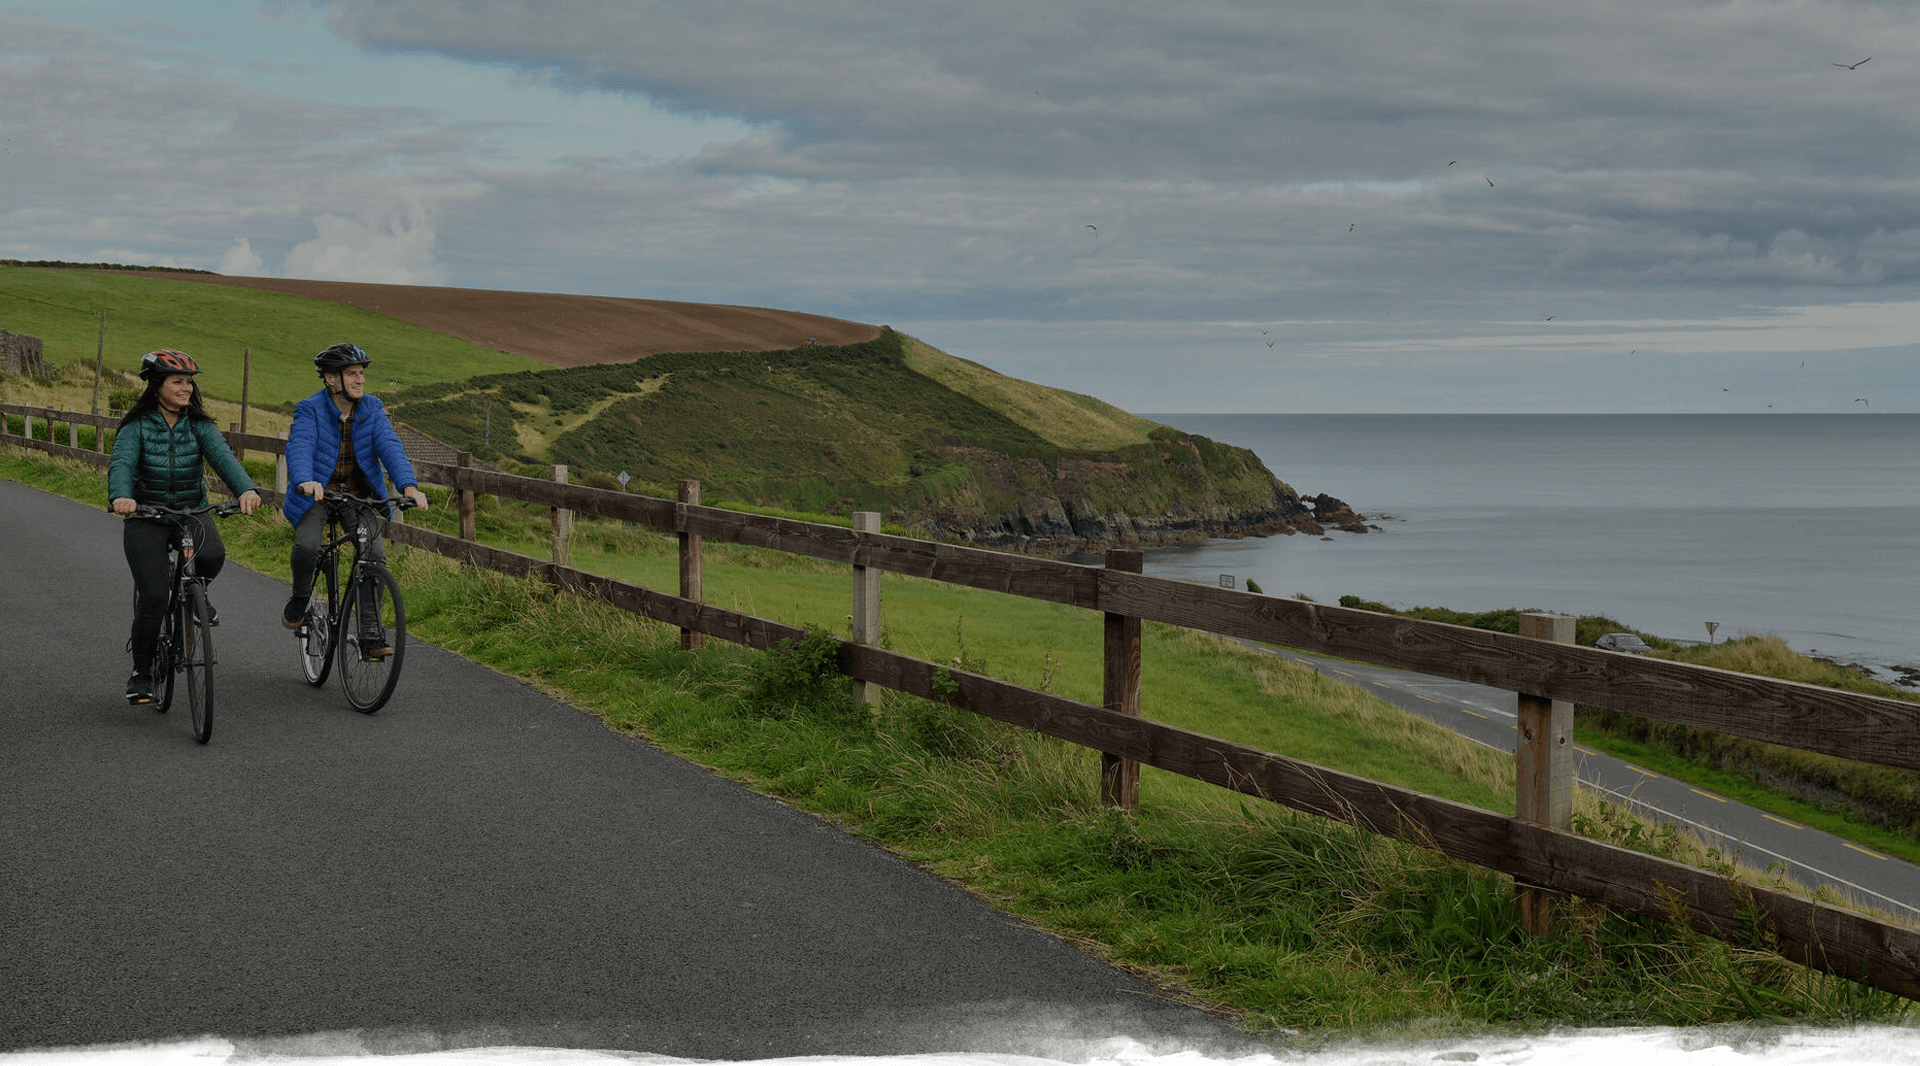 Explore the Scenic Waterford Greenway by Bike<br/>A Safe & Family Friendly Outdoor Activity